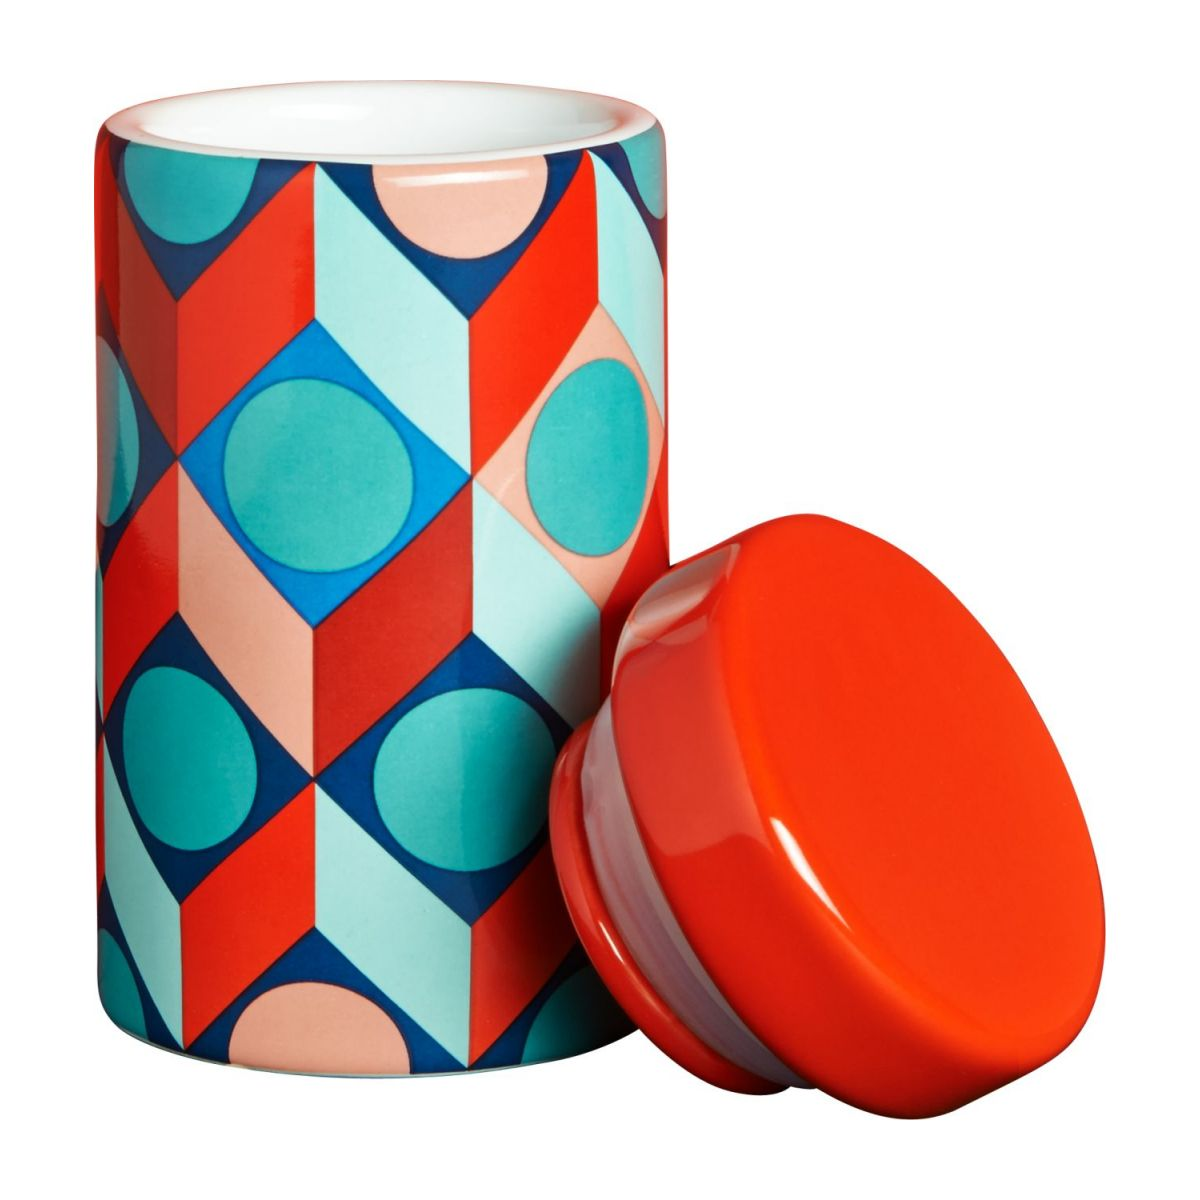 Spice jar with patterns n°2